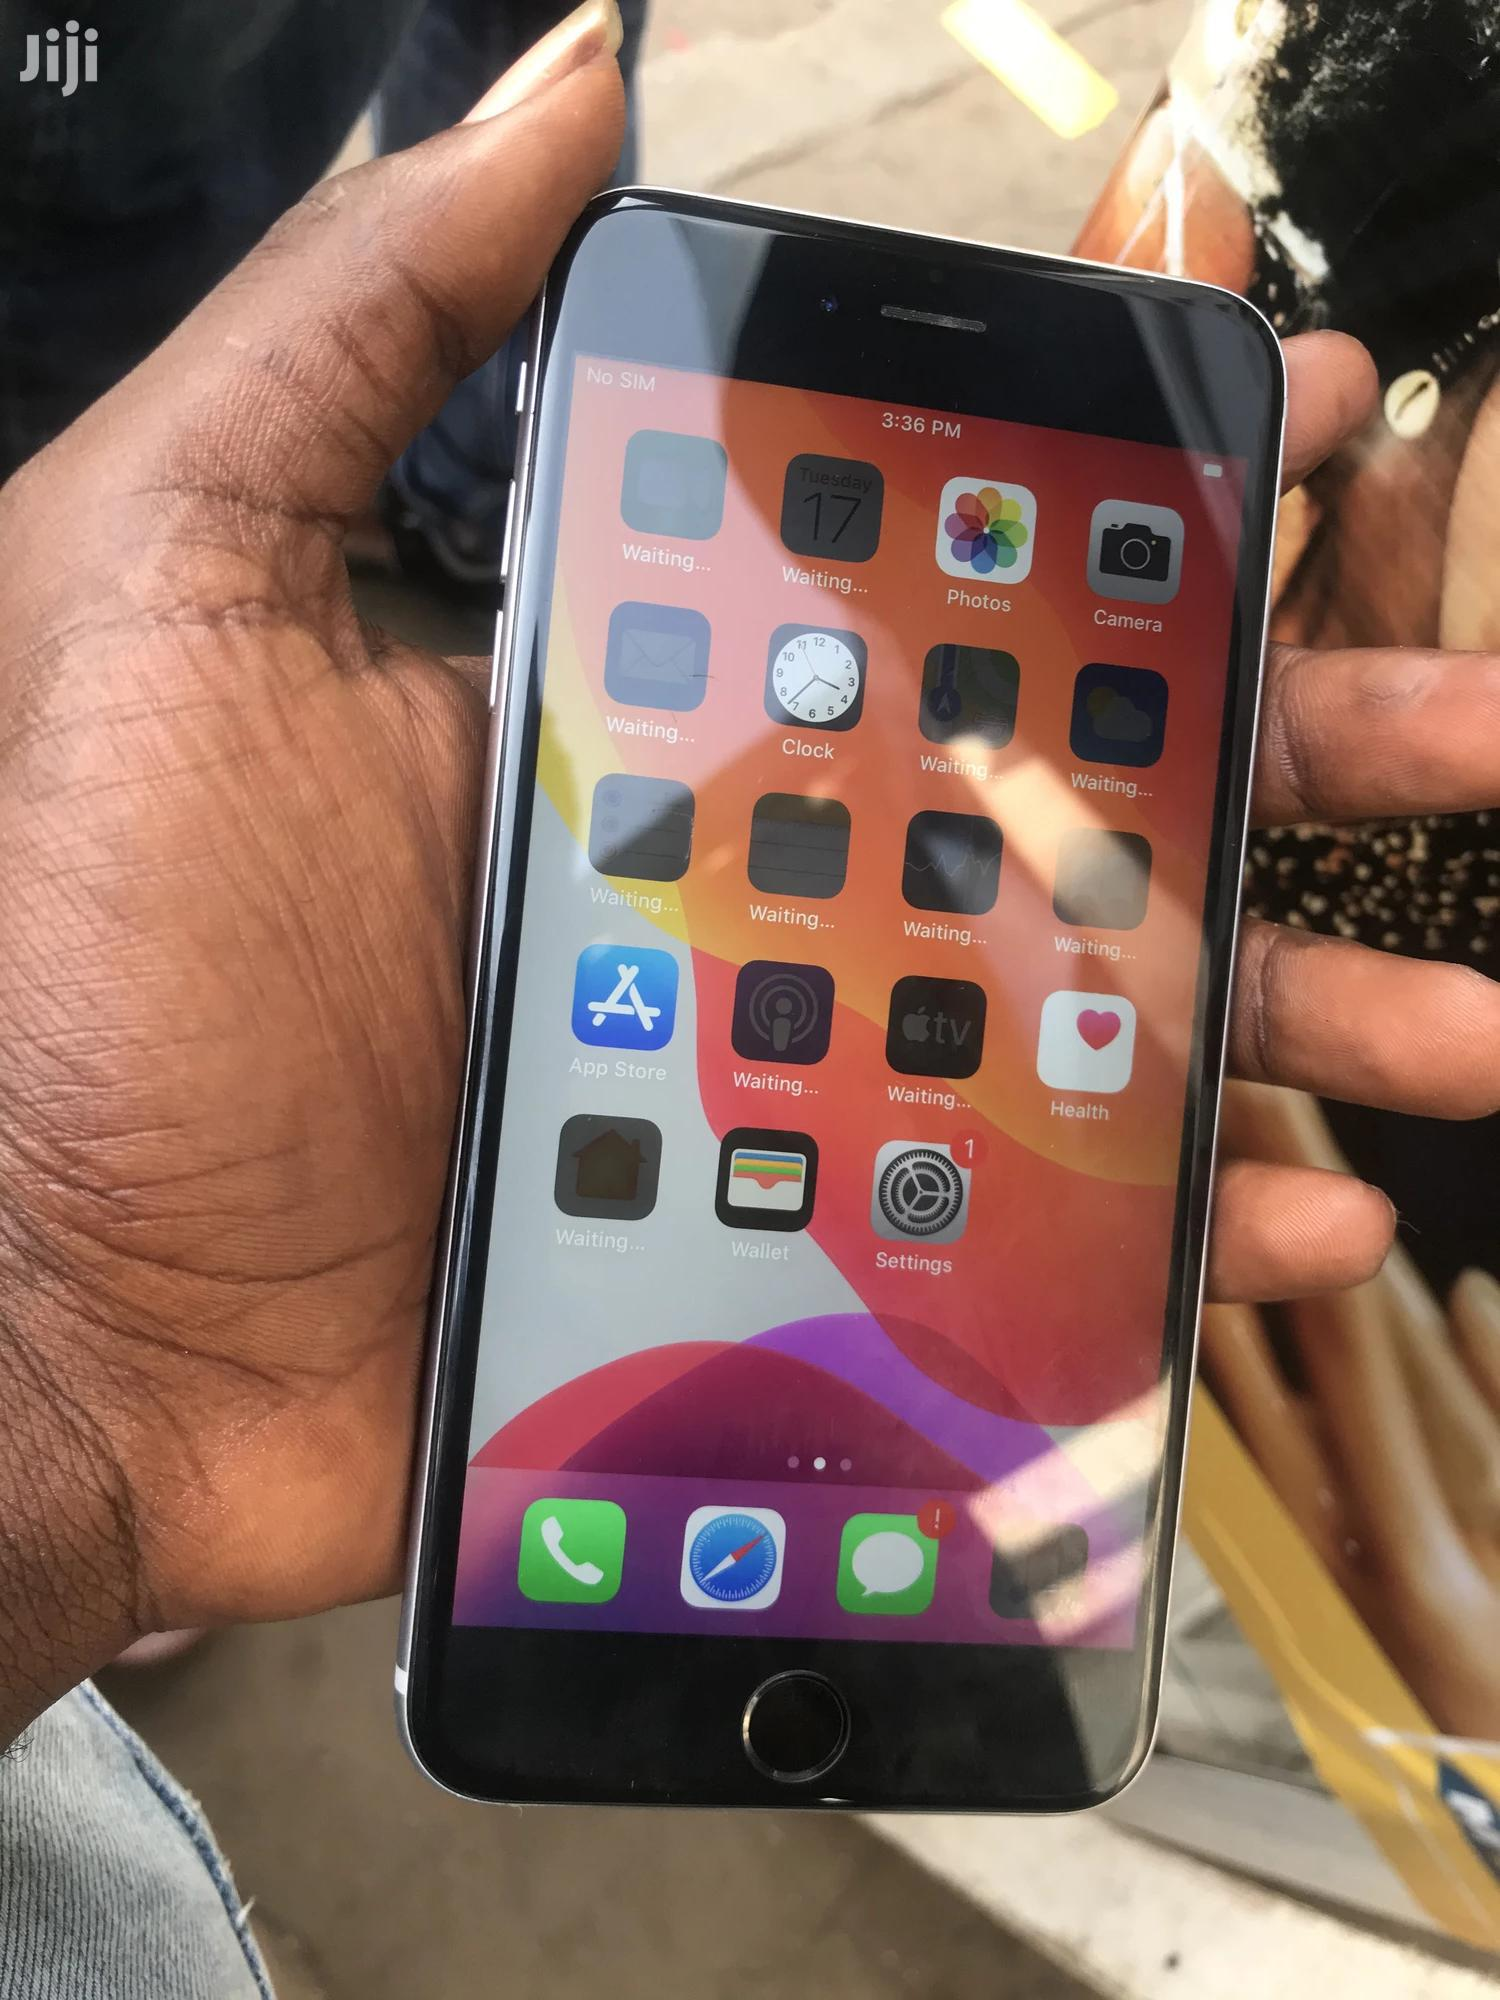 Apple iPhone 6s Plus 64 GB Silver | Mobile Phones for sale in Kokomlemle, Greater Accra, Ghana